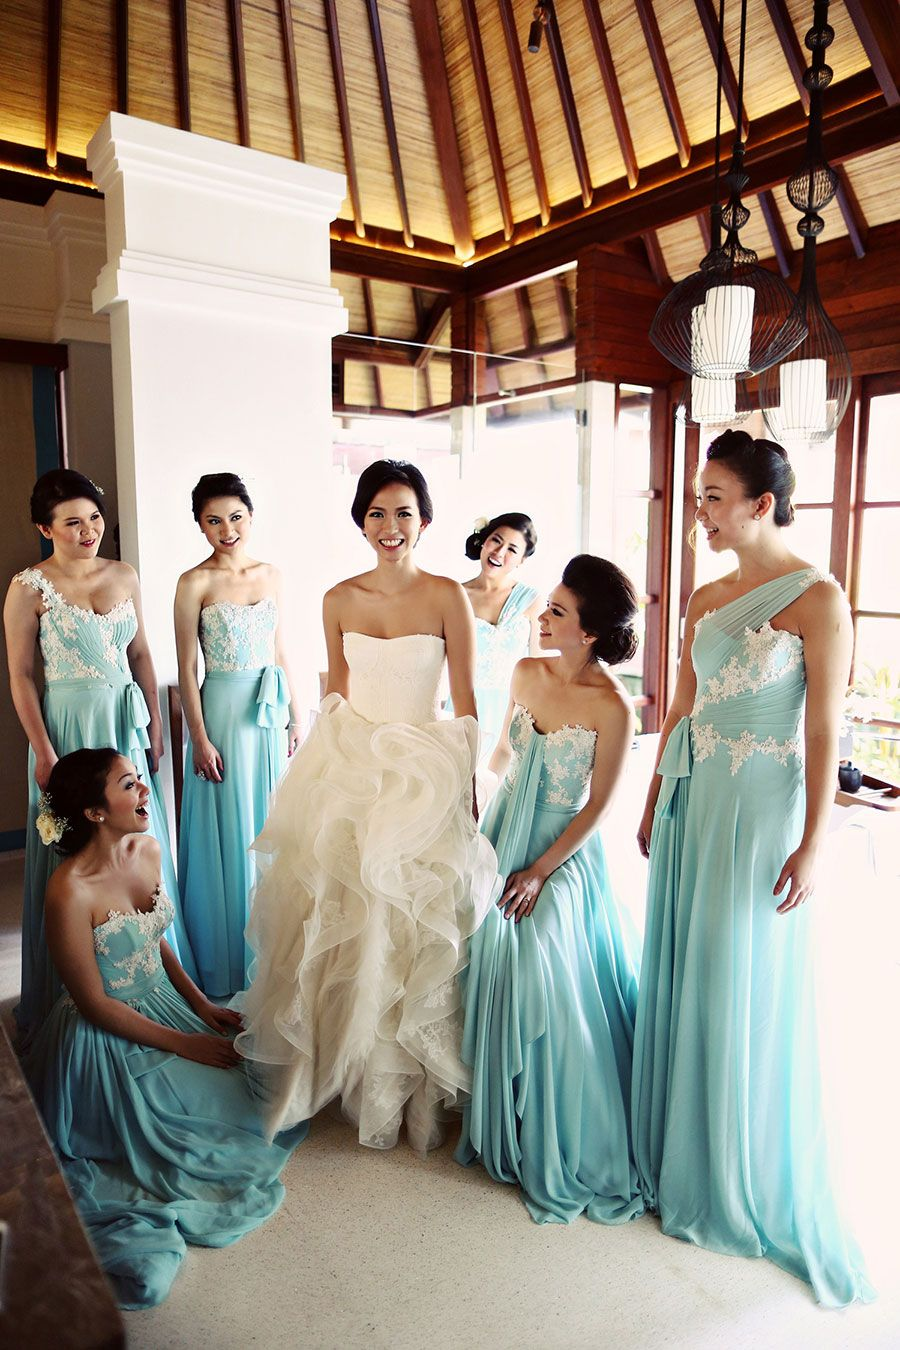 Mint bridesmaid dresses alvin and cindys nautical beach wedding mint bridesmaid dresses alvin and cindys nautical beach wedding in balialvin and cindys nautical beach ombrellifo Images